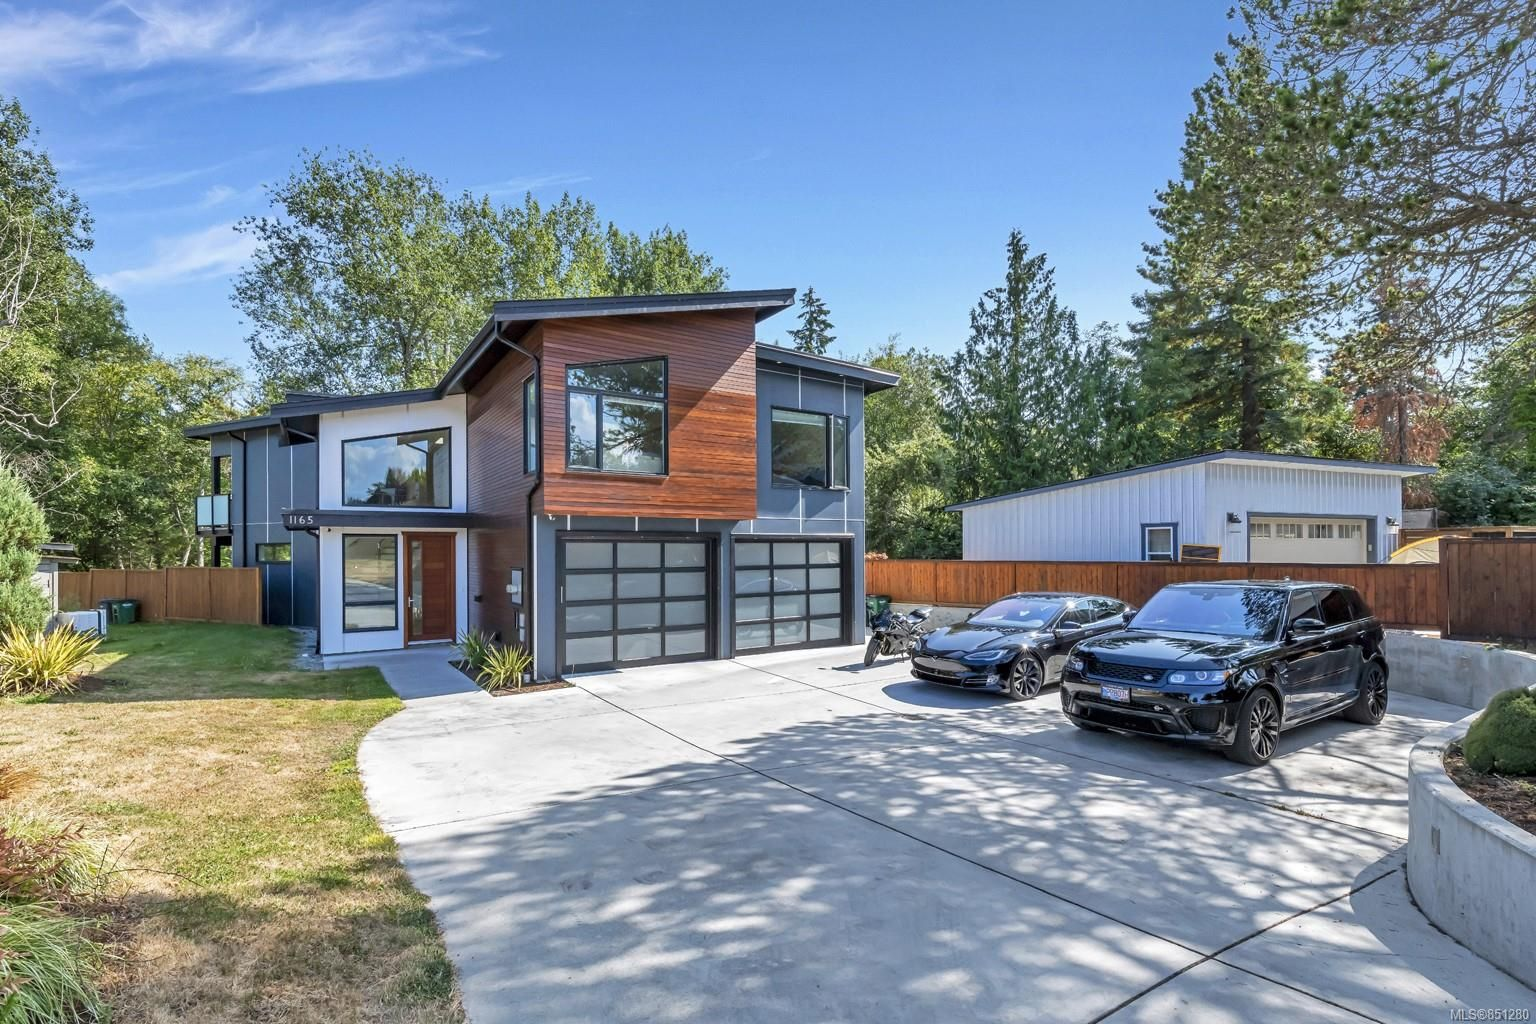 Main Photo: 1165 Royal Oak Dr in : SE Sunnymead House for sale (Saanich East)  : MLS®# 851280